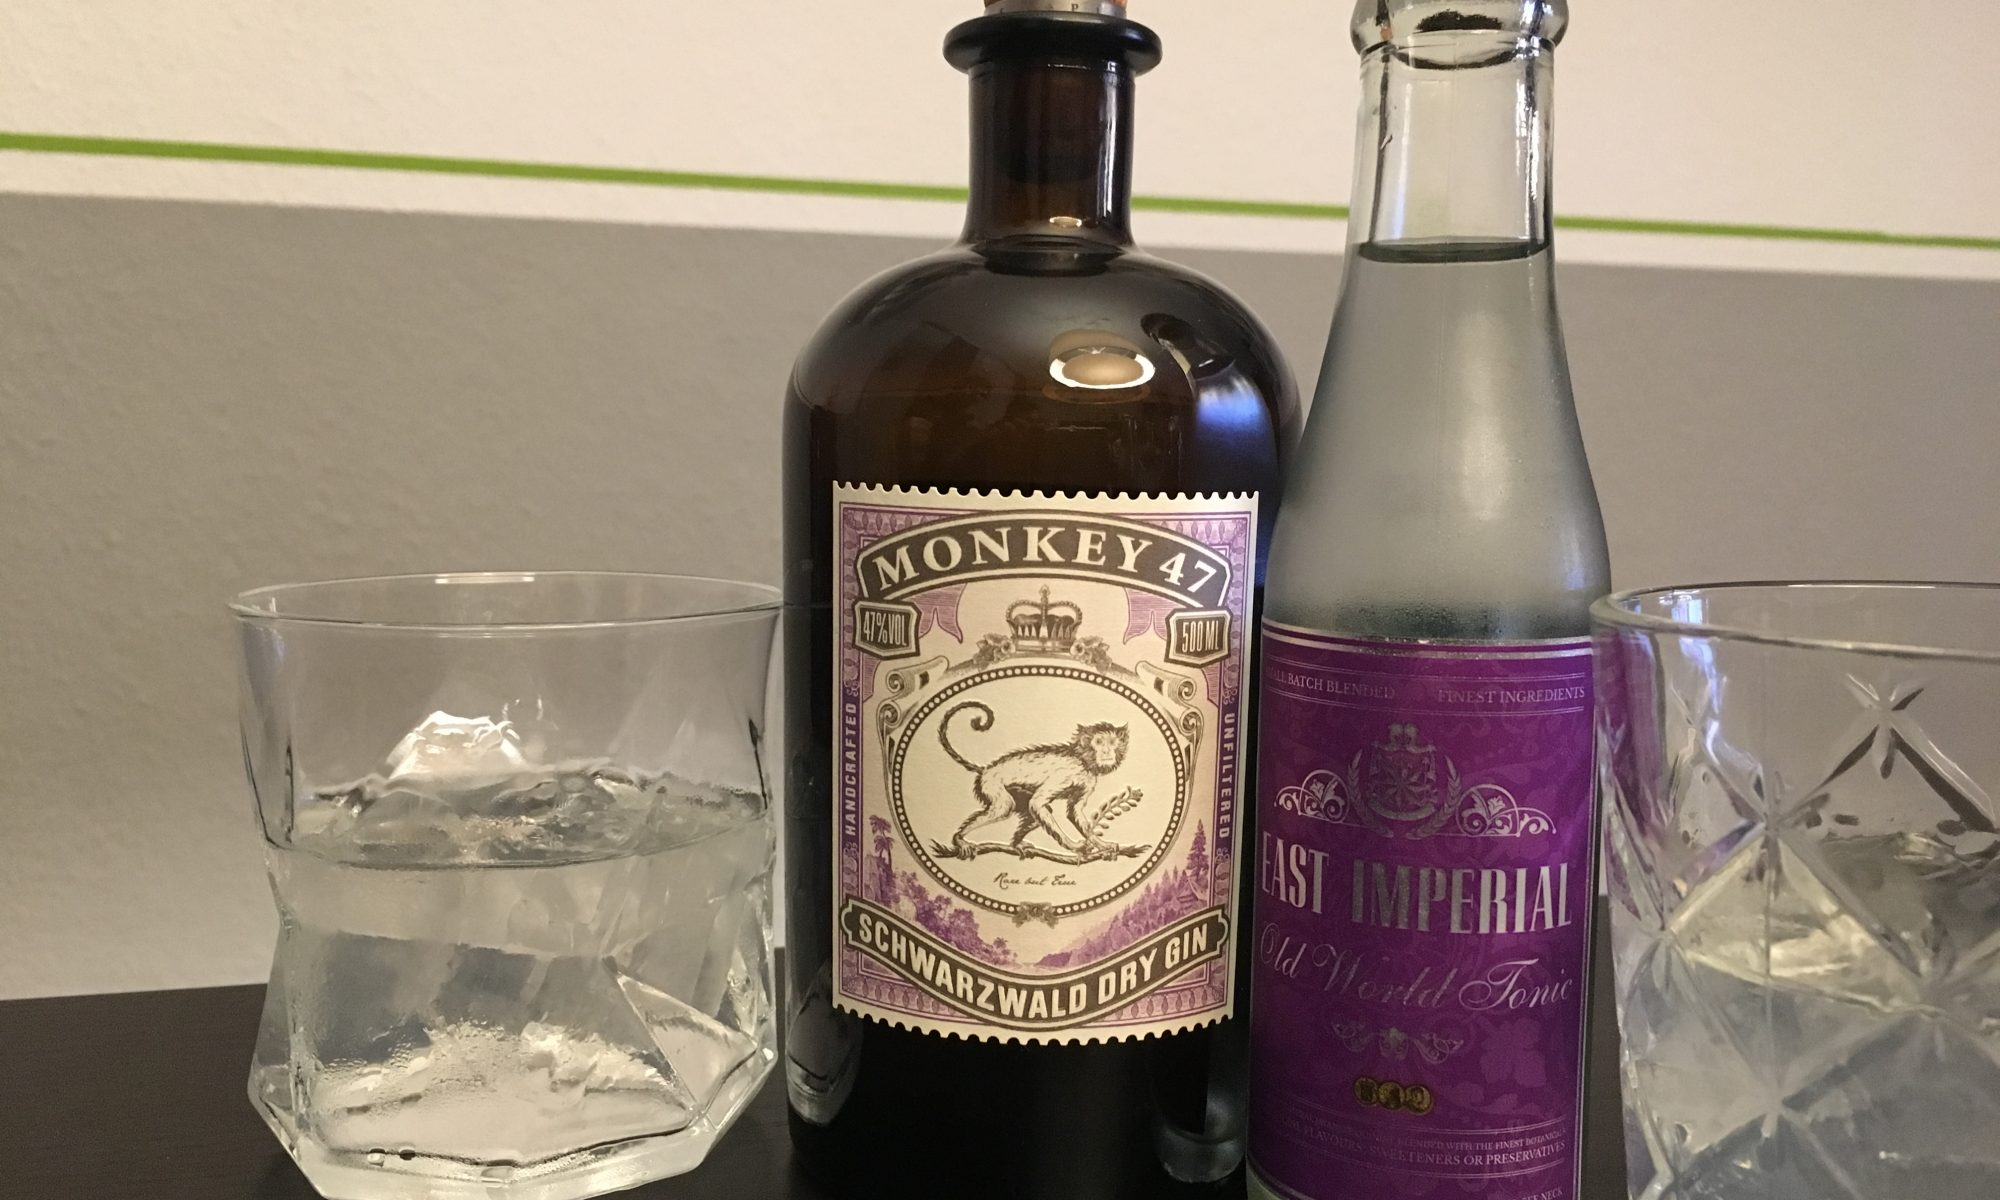 Monkey Gin East Imperial